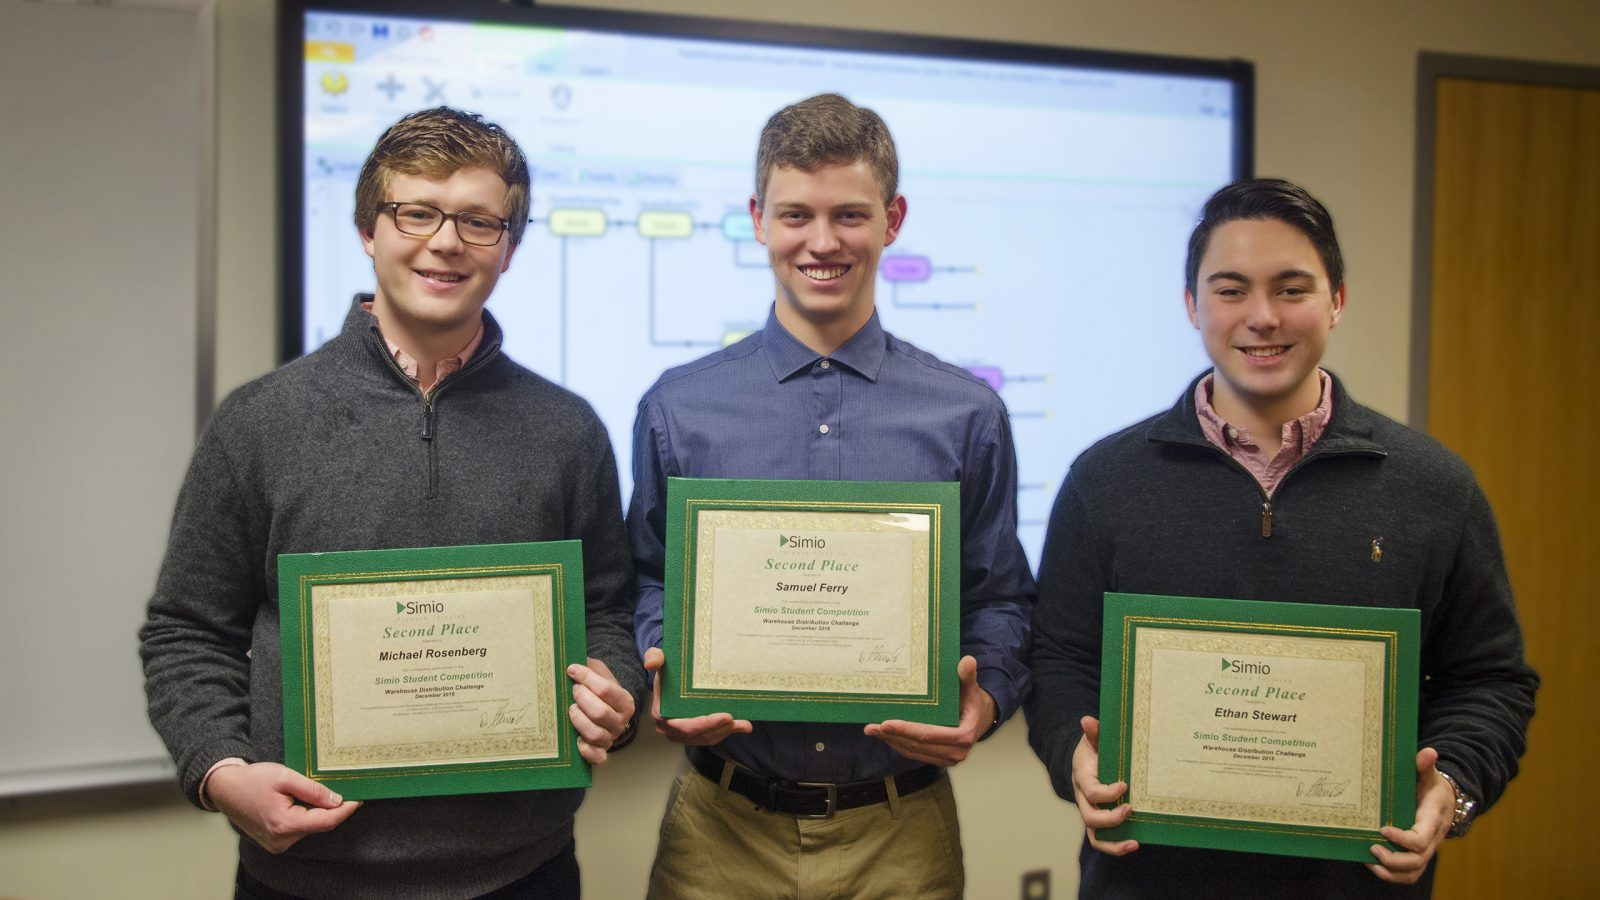 Michael Rosenberg, Smauel Ferry, and Ethan Stewart receive their Simio Certifiactes